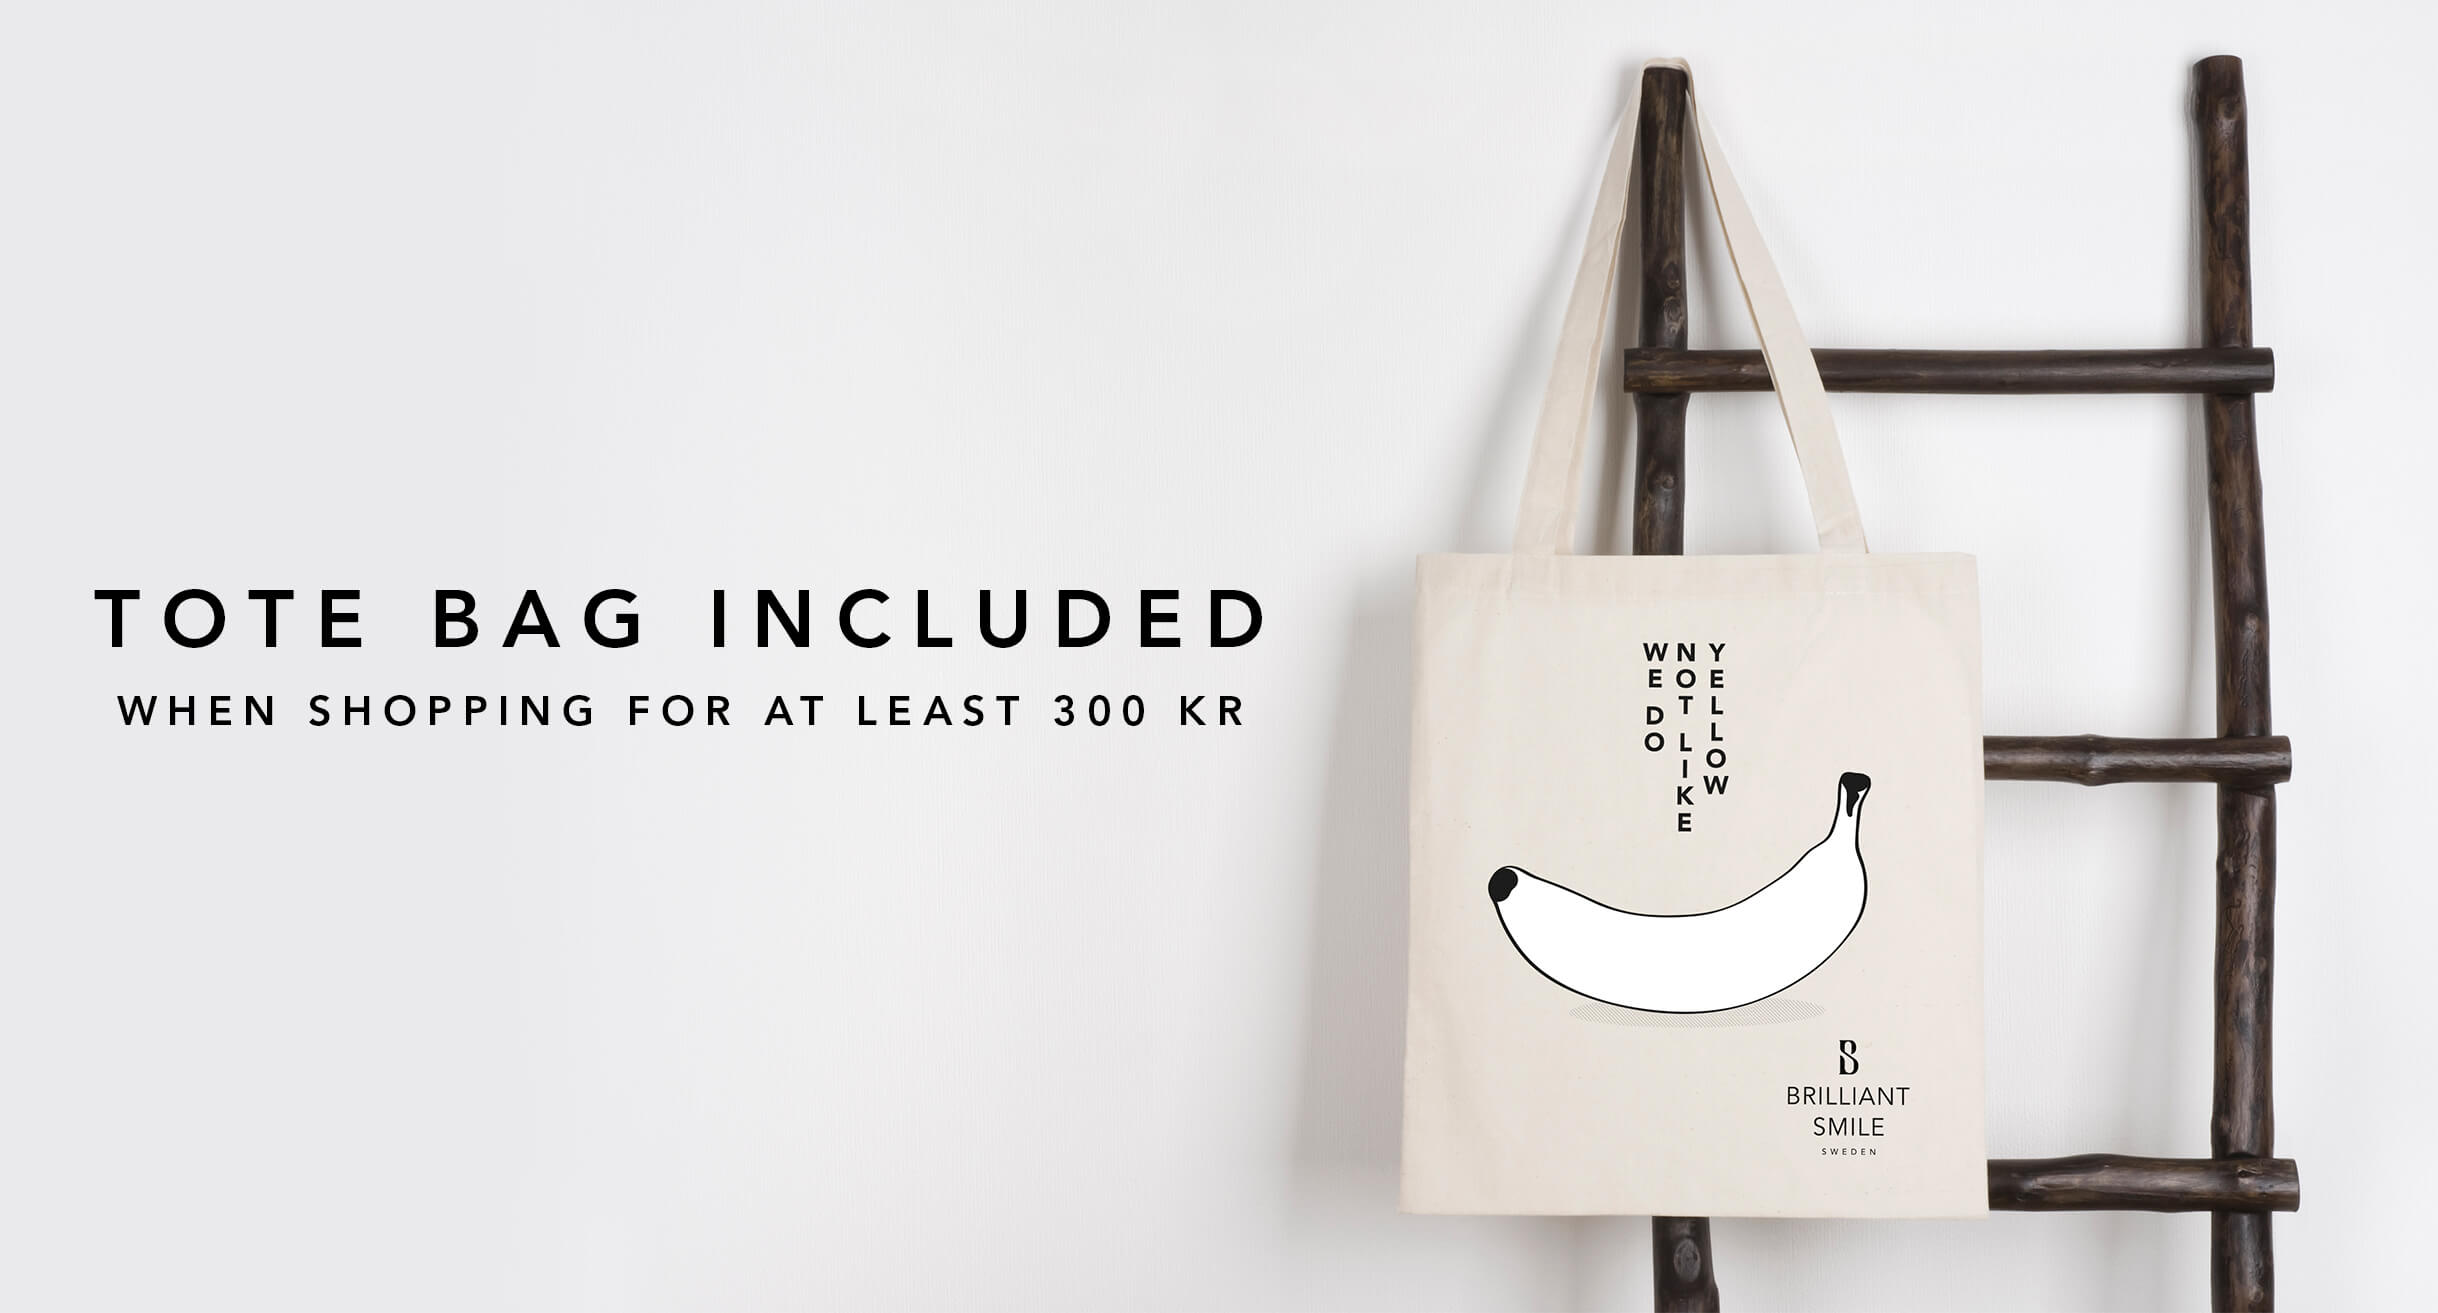 Tote bag included when shopping for at least 300 kr!